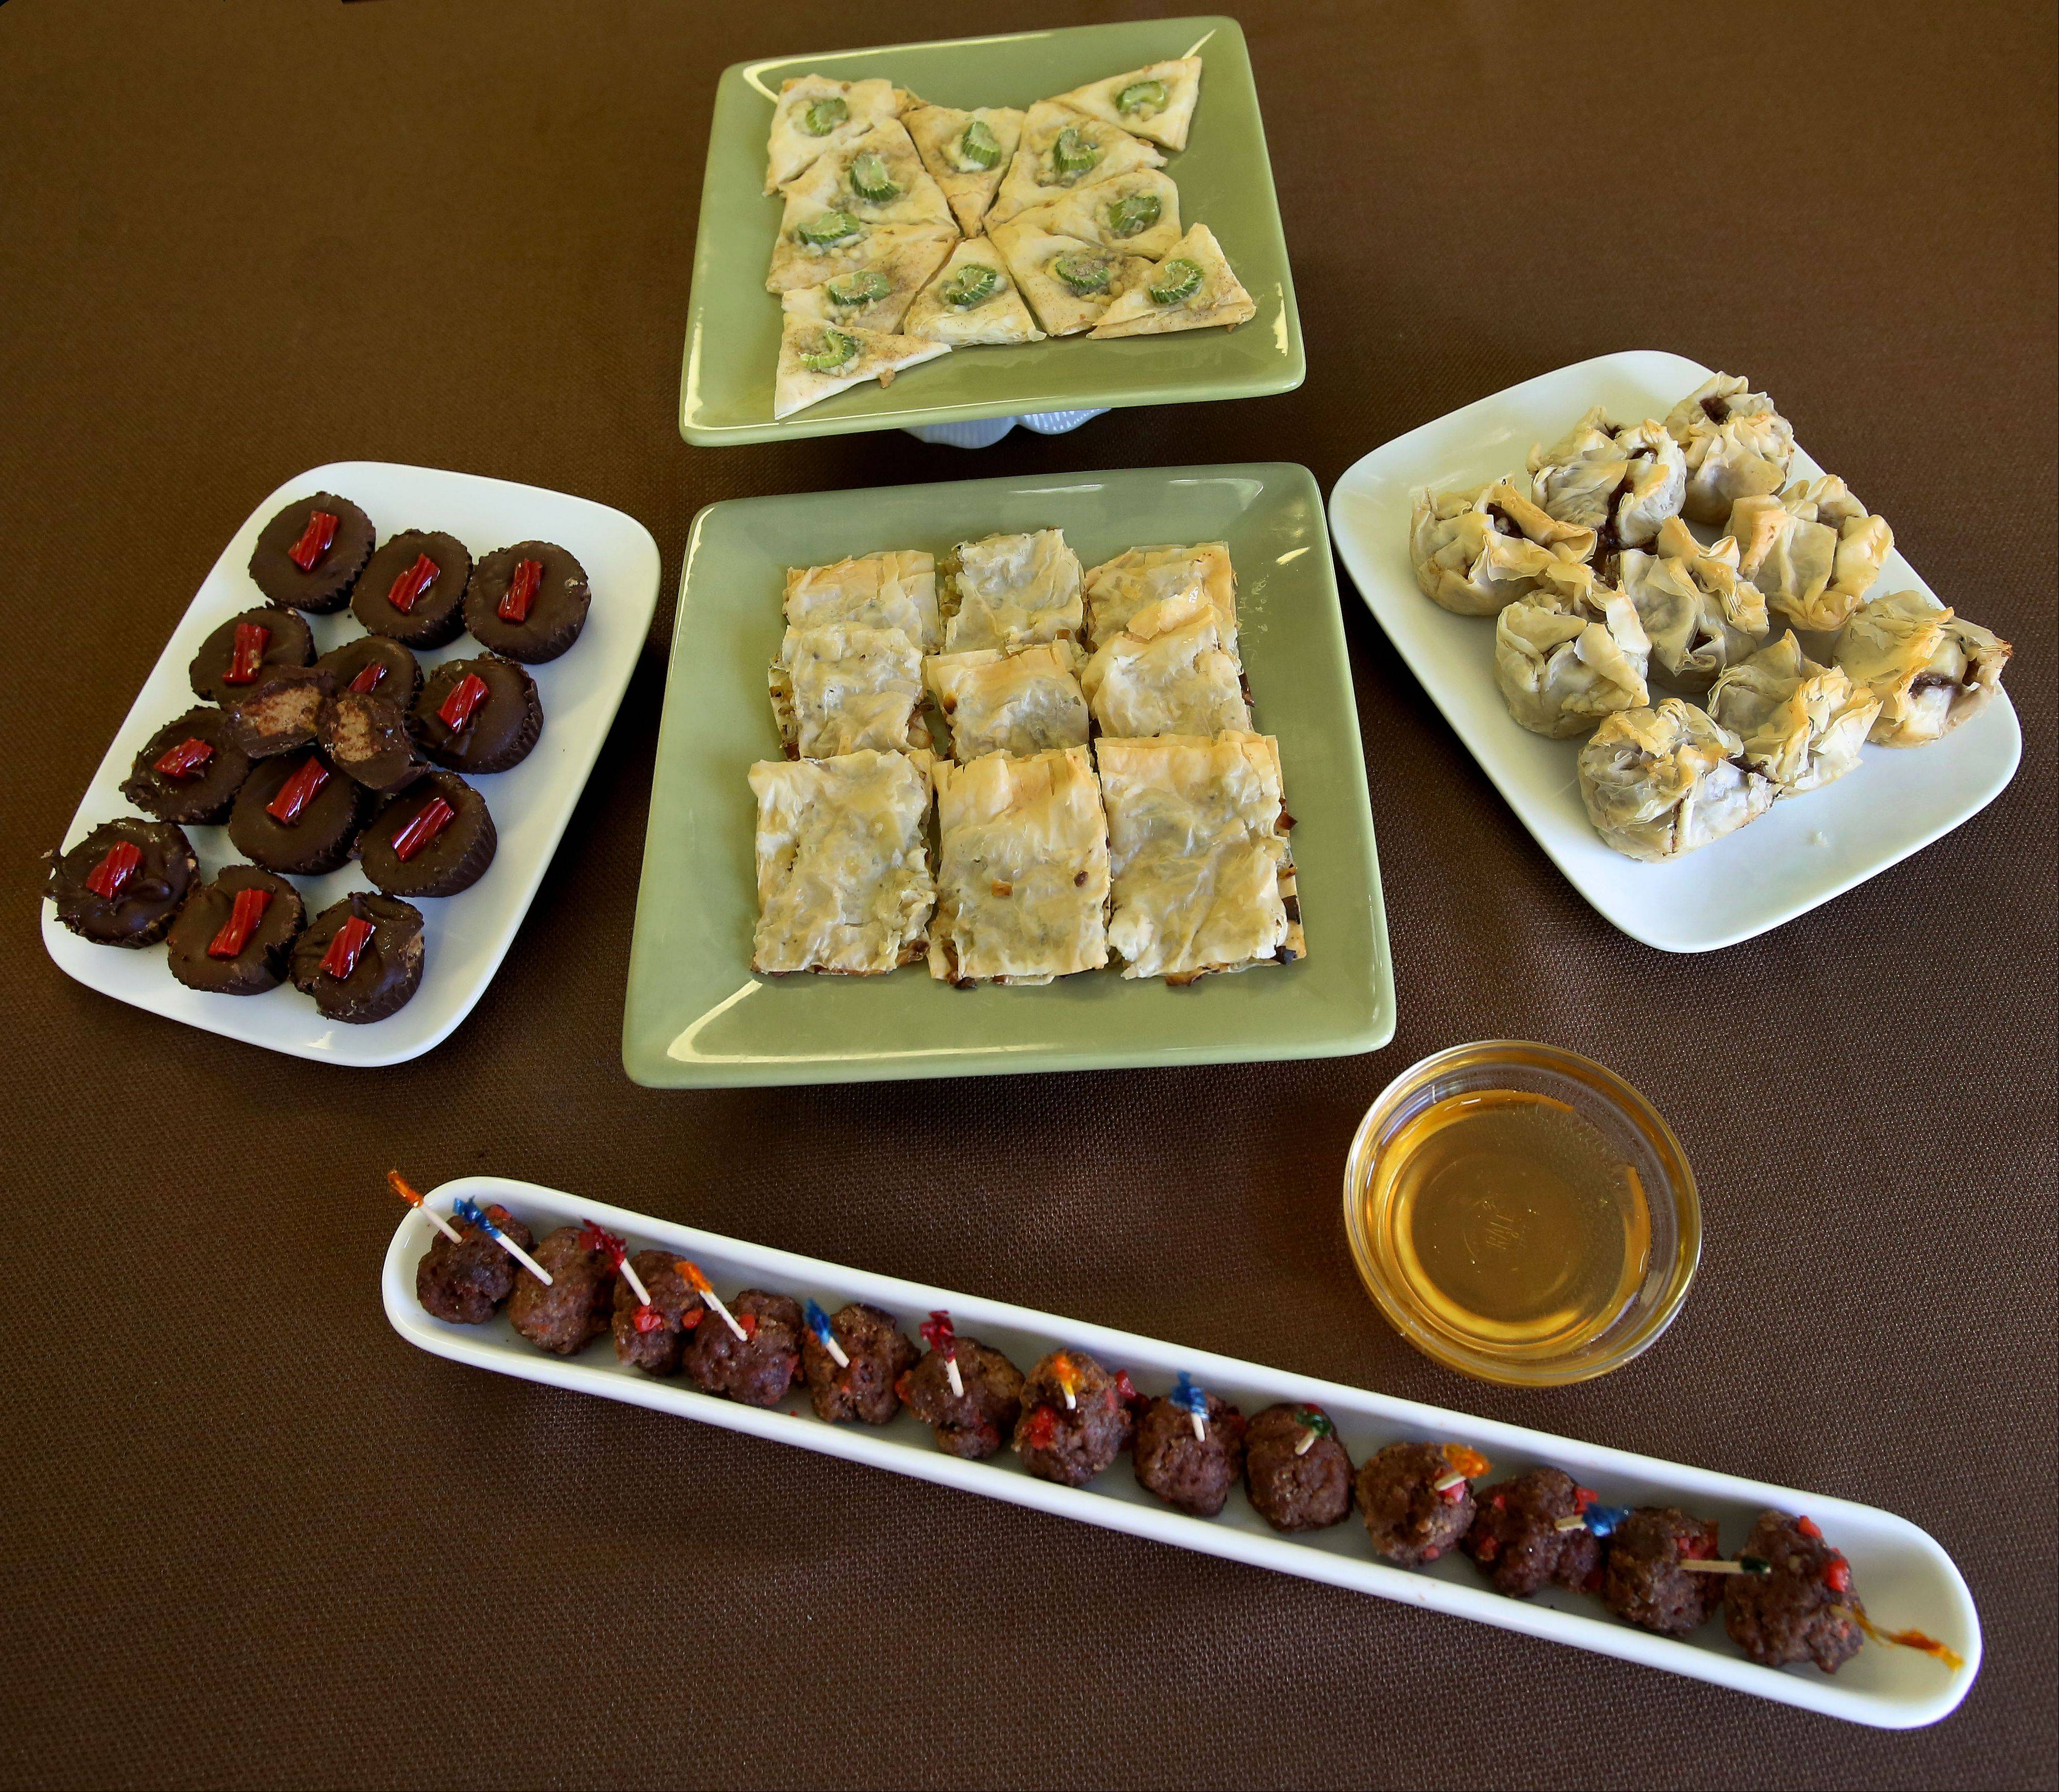 Judy Monaco worked Twizzlers, almond butter, celery and phyllo dough into an imaginative spread that included Mini Meatballs with a Sweet Twist, Almond Butter Cups, Blue Cheese Tasters, Savory Appetizer Bites, Tasty Beef Appetizer.